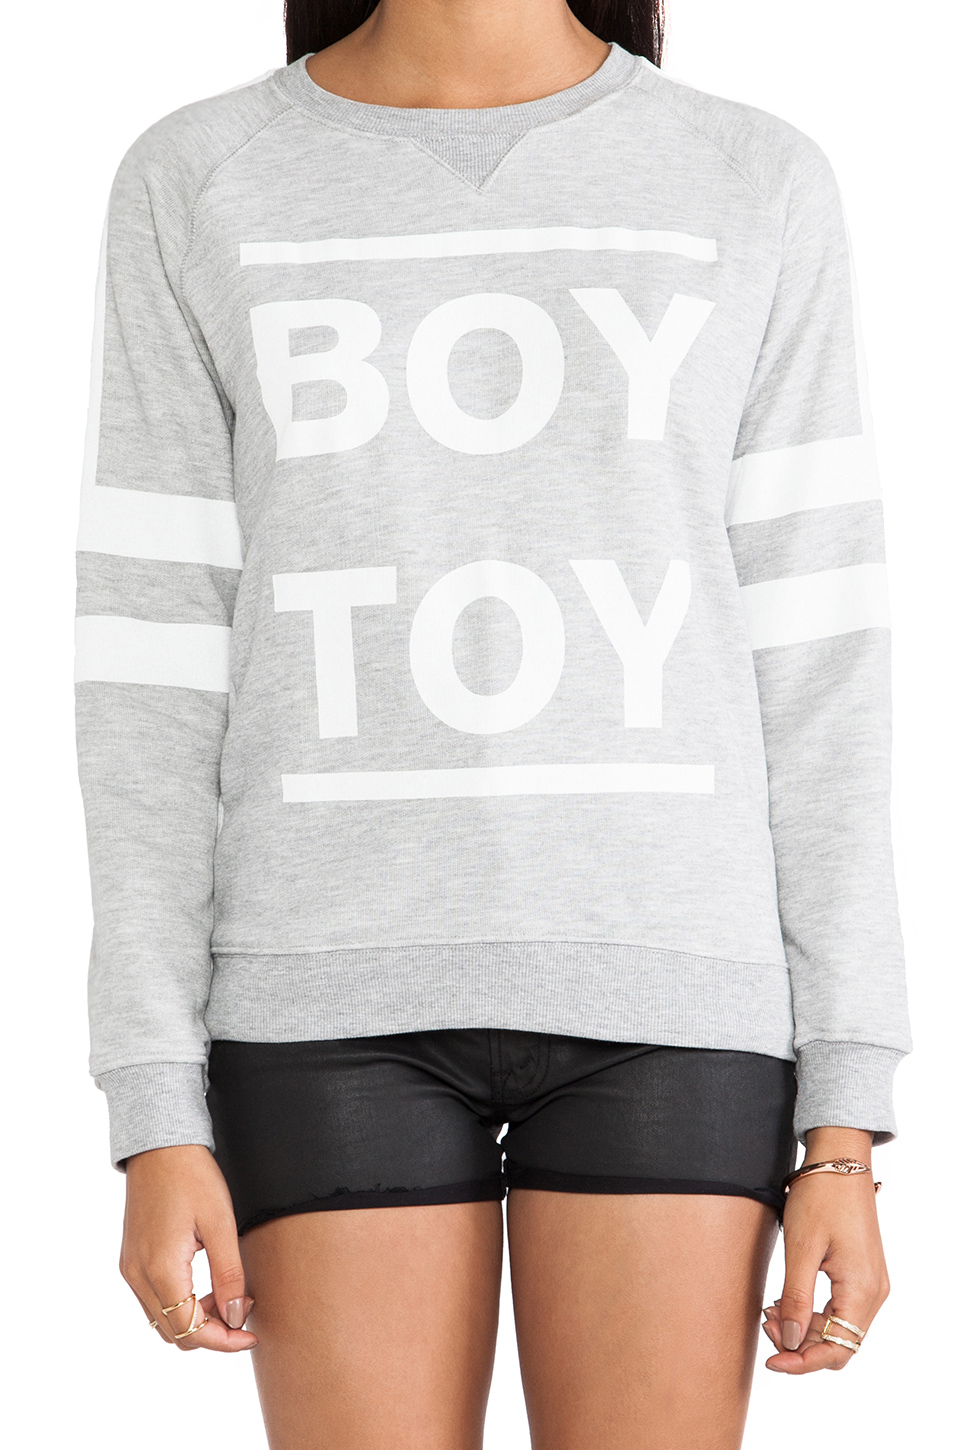 Zoe Karssen Boy Toy Sweatshirt in Grey Heather | REVOLVE